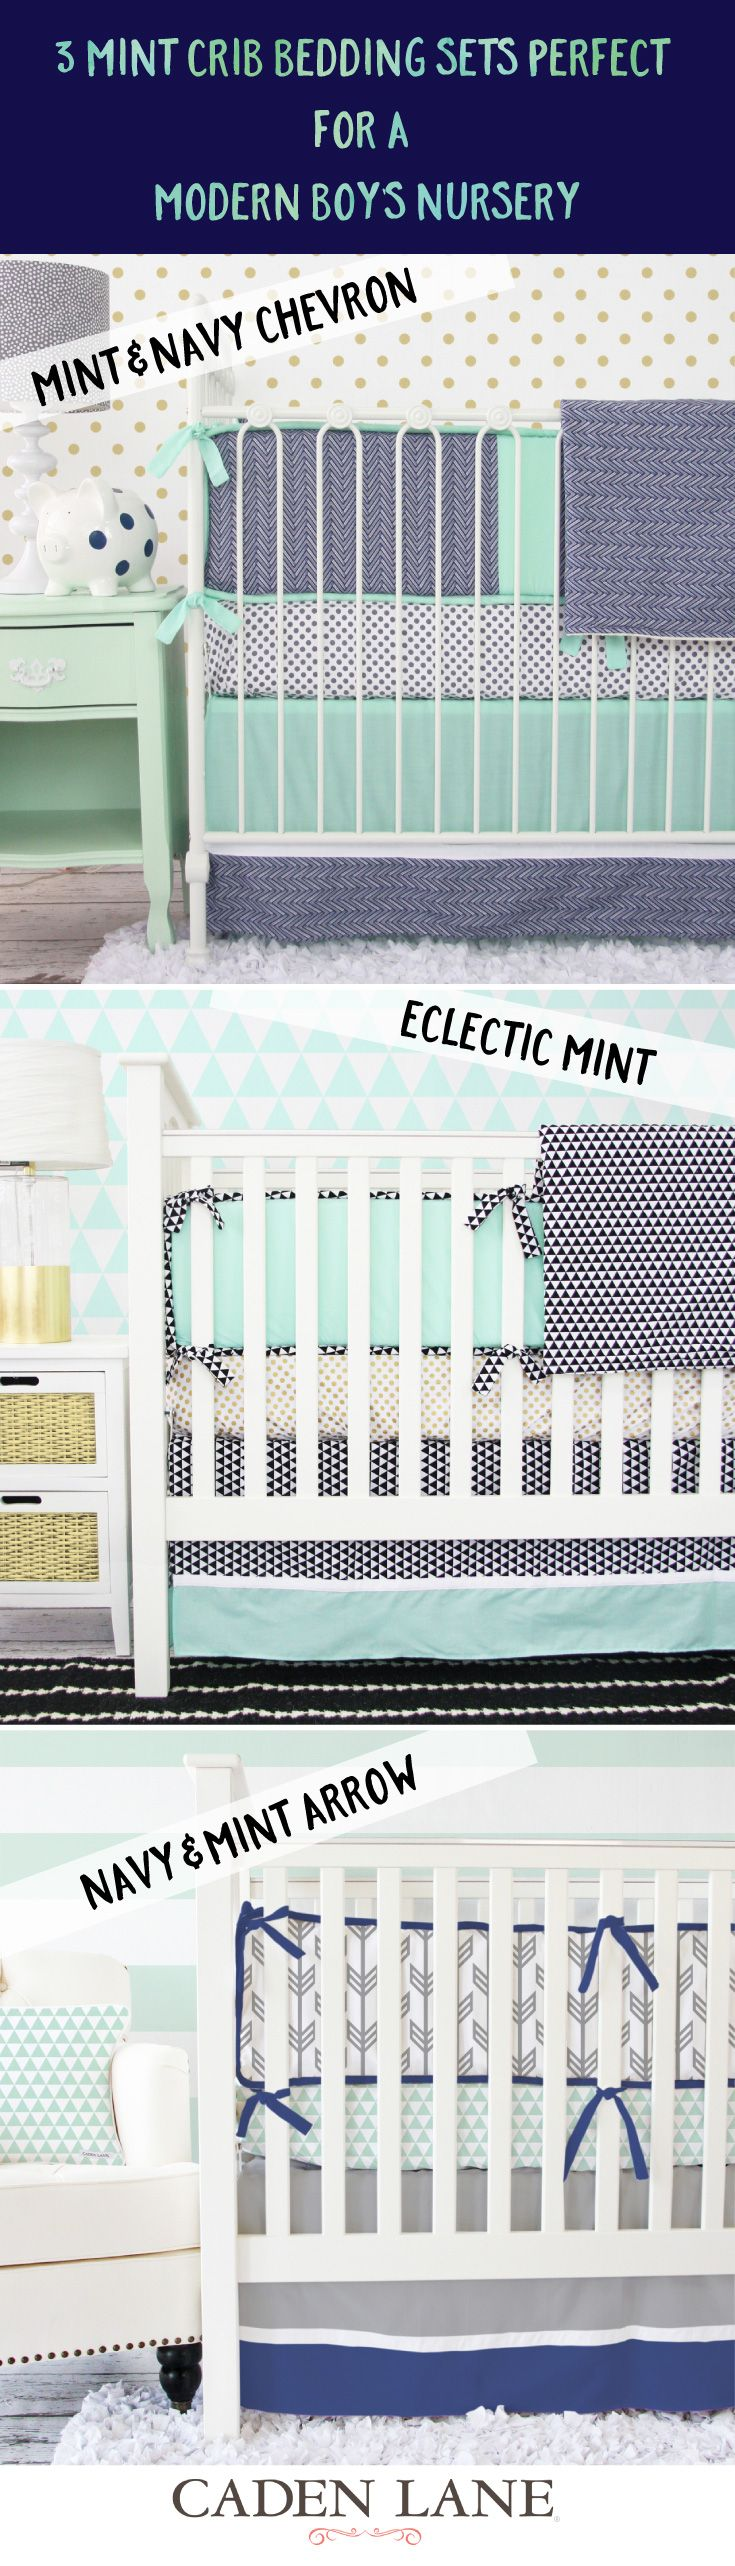 Crib bedding set gray white navy blue with by butterbeansboutique - 3 Mint Crib Bedding Sets Perfect For A Modern Boy S Nursery